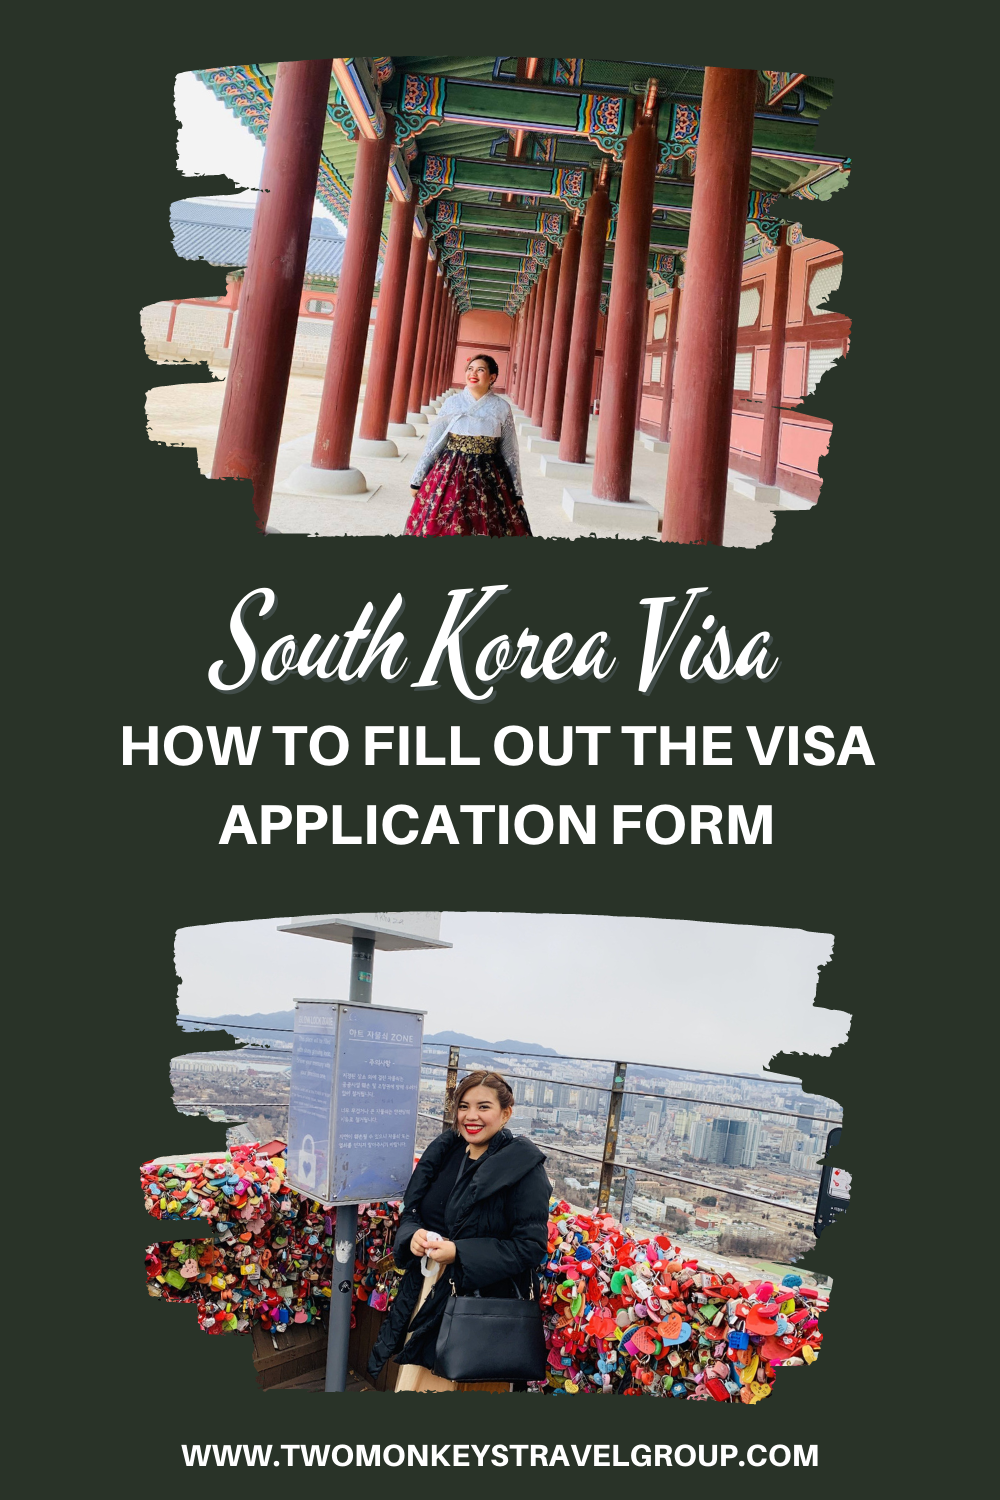 How to Fill Out a South Korea Visa Application Form [Step by Step Guide]